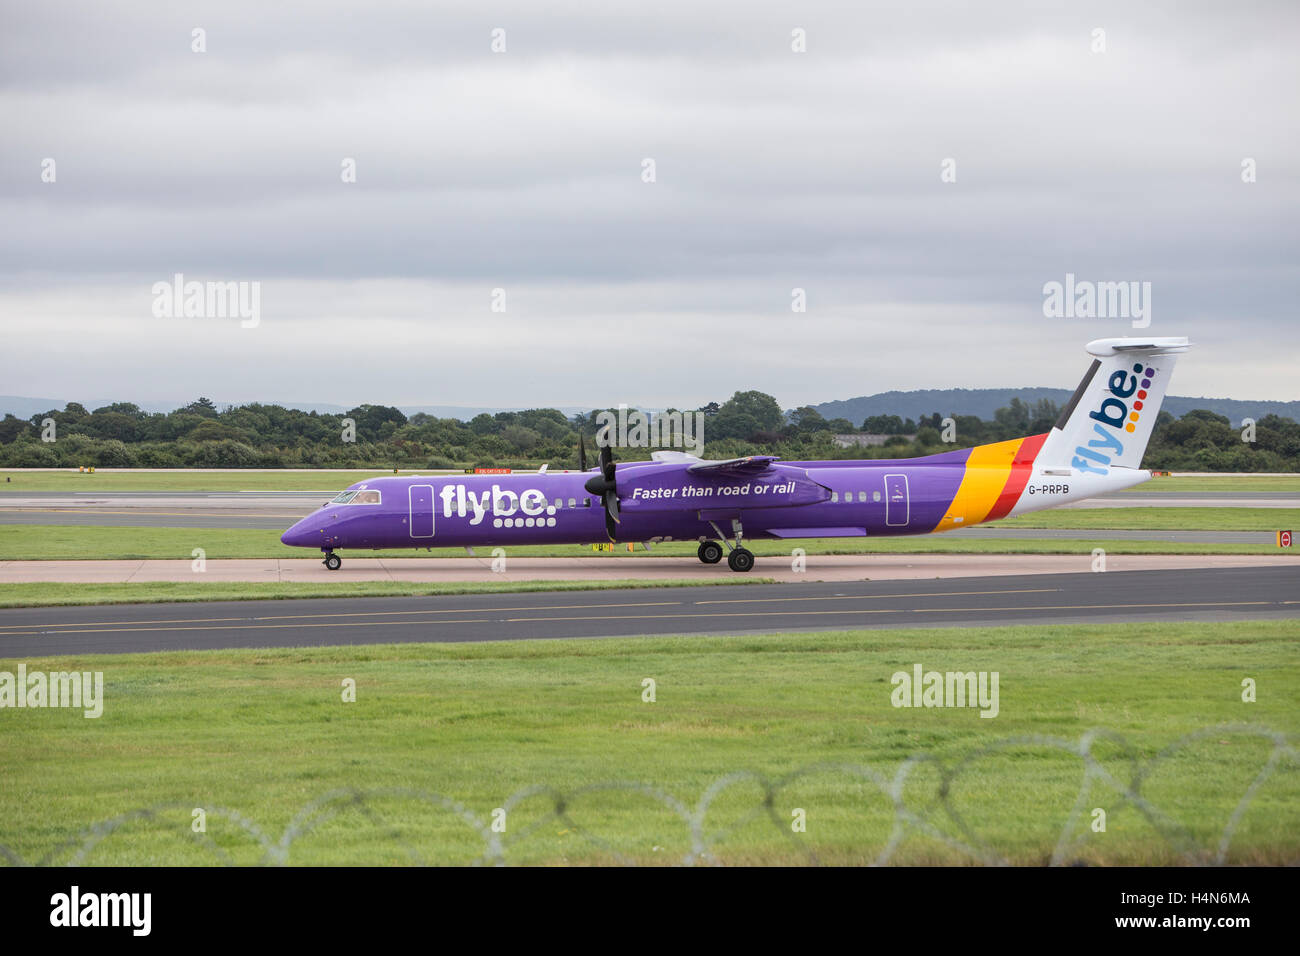 Bombadier Dash 8 Aircraft owned by Flybe Airlines at Manchester Ringways Airport - Stock Image